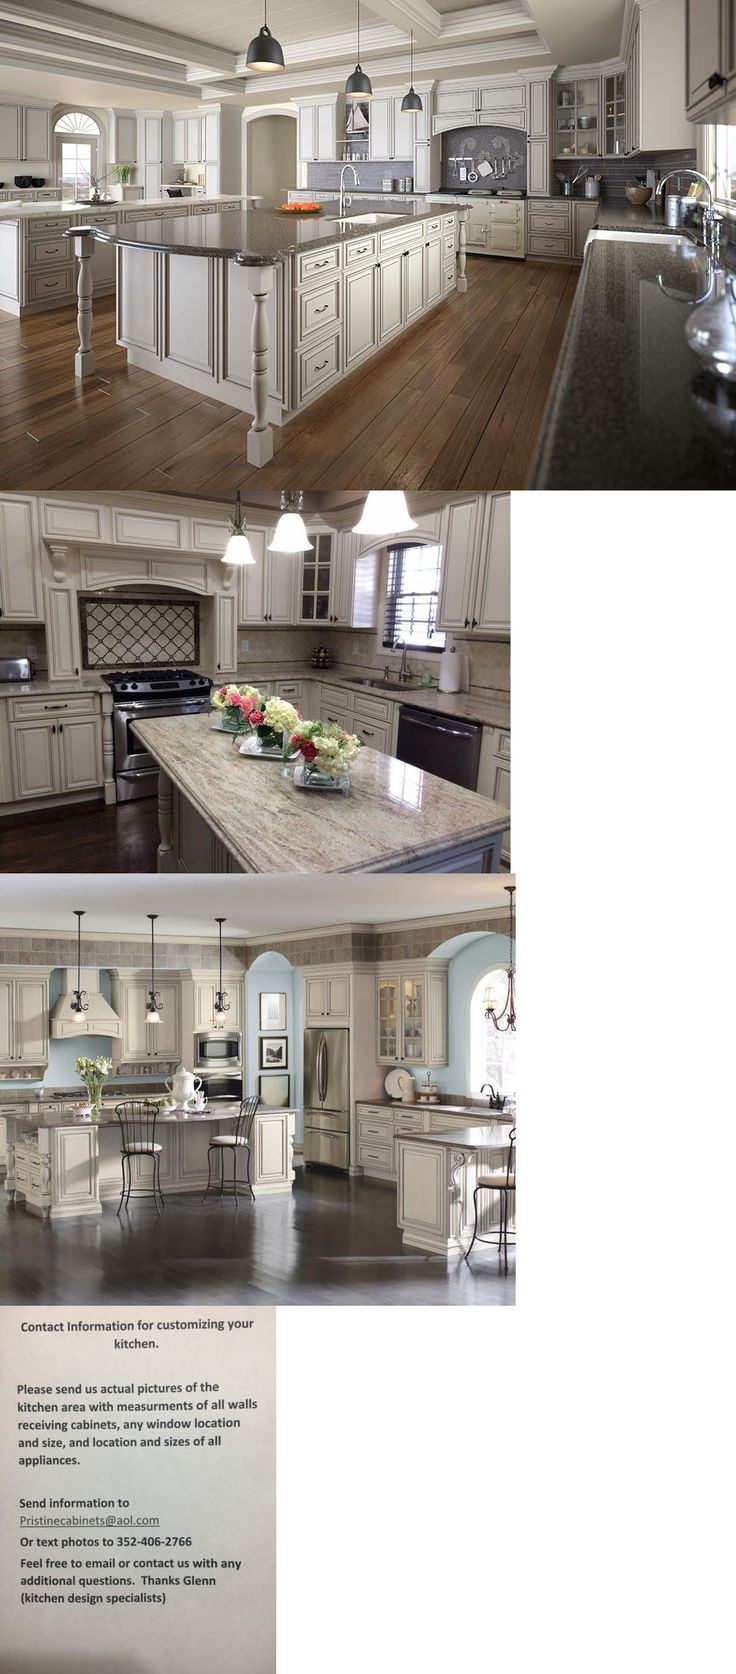 10x10 kitchen cabinets - Cabinets 85879 Antique Pearl White All Wood Top Quality Rta Kitchen Cabinets 10x10 Layout